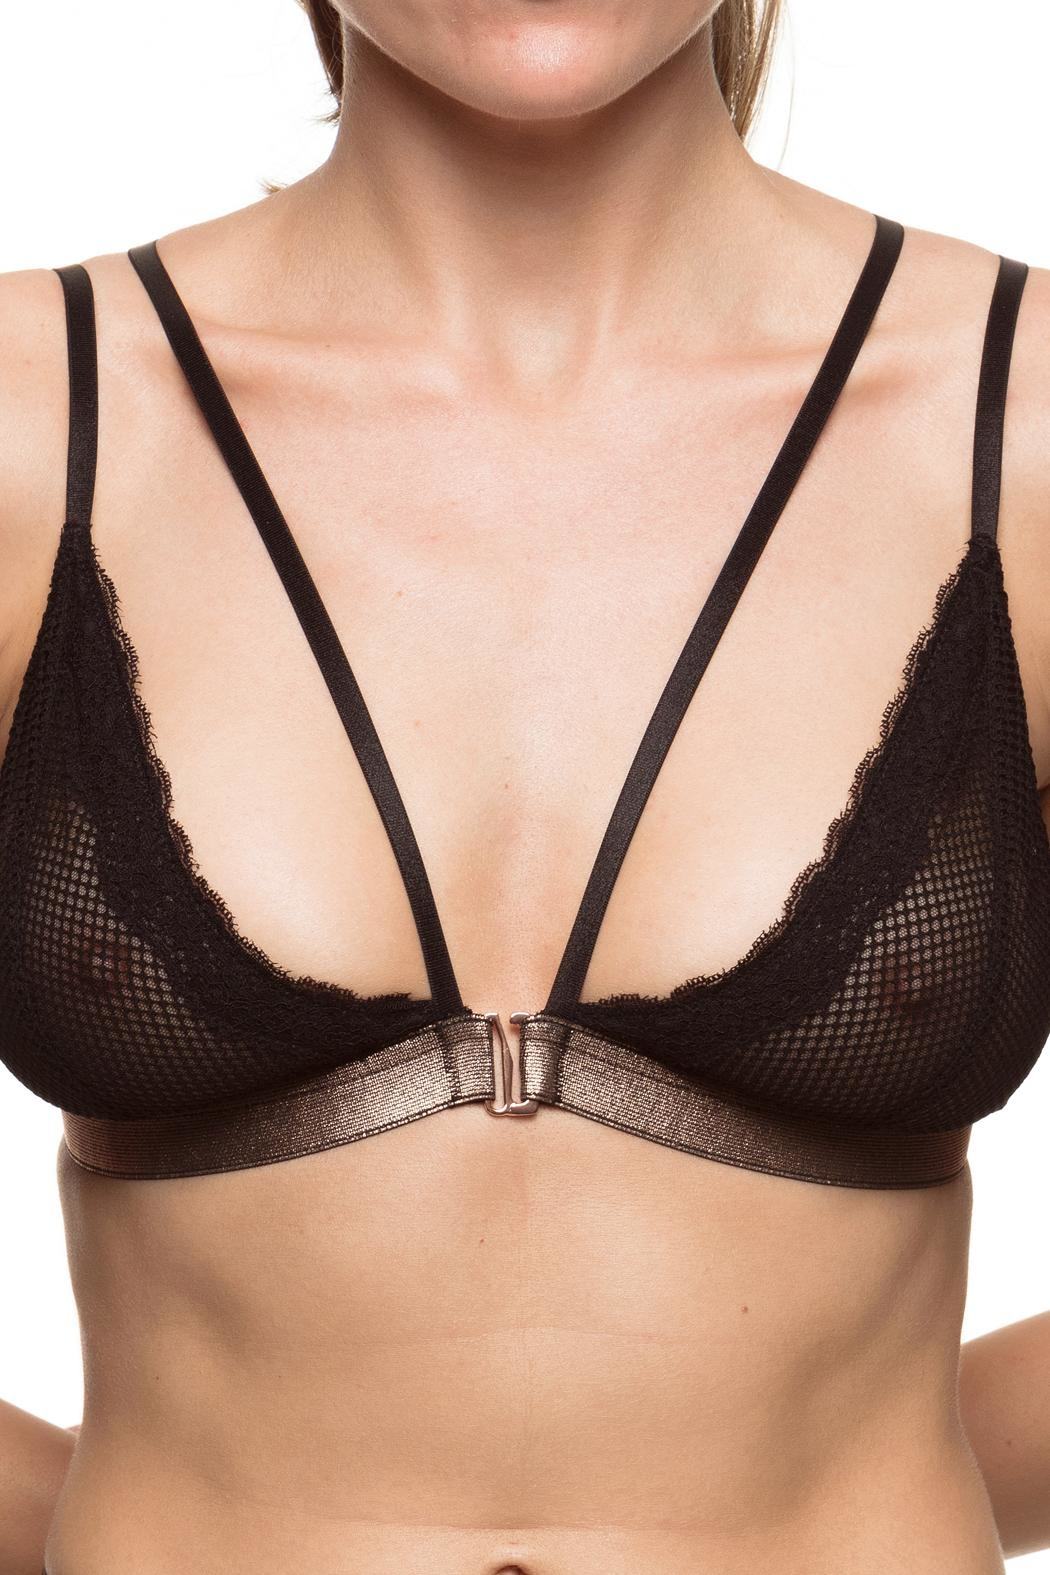 KissKill Bianca Mesh Bralette - Front Cropped Image